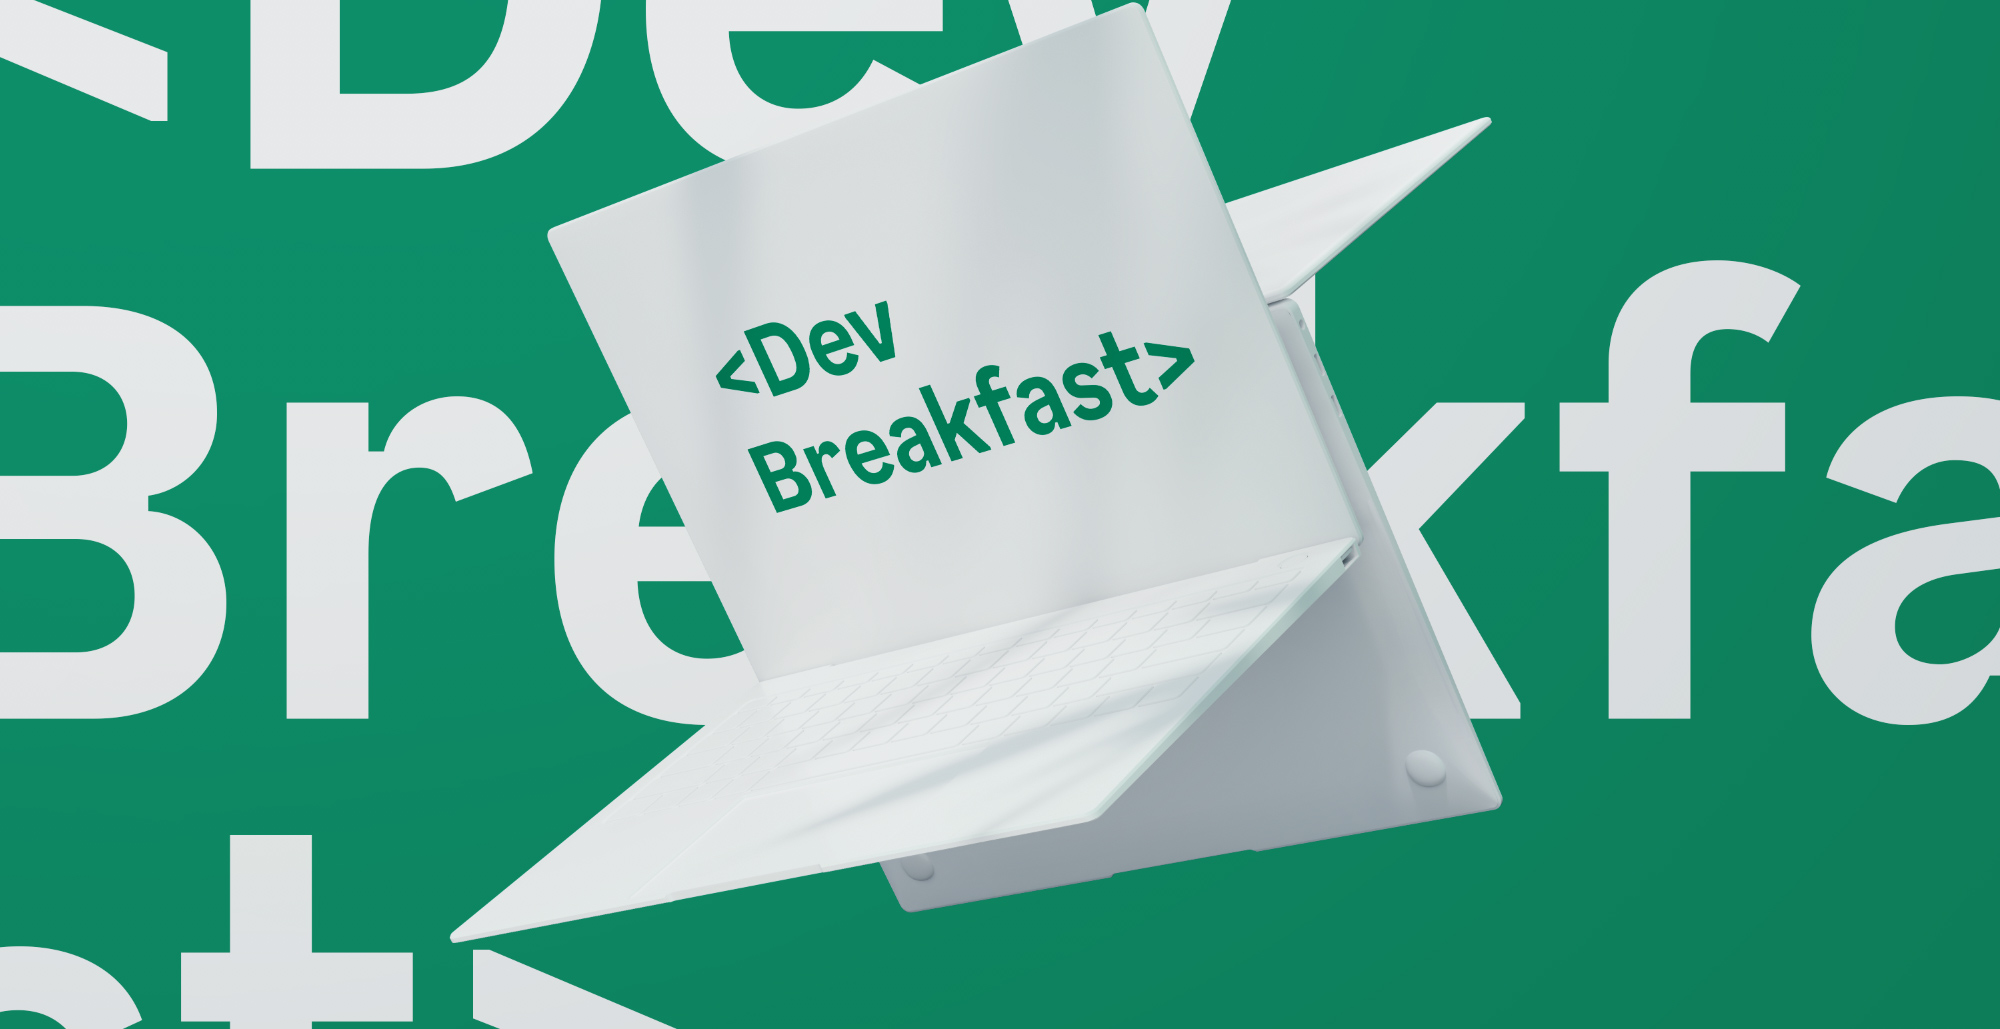 dev-breakfast-helsinki-newsletter